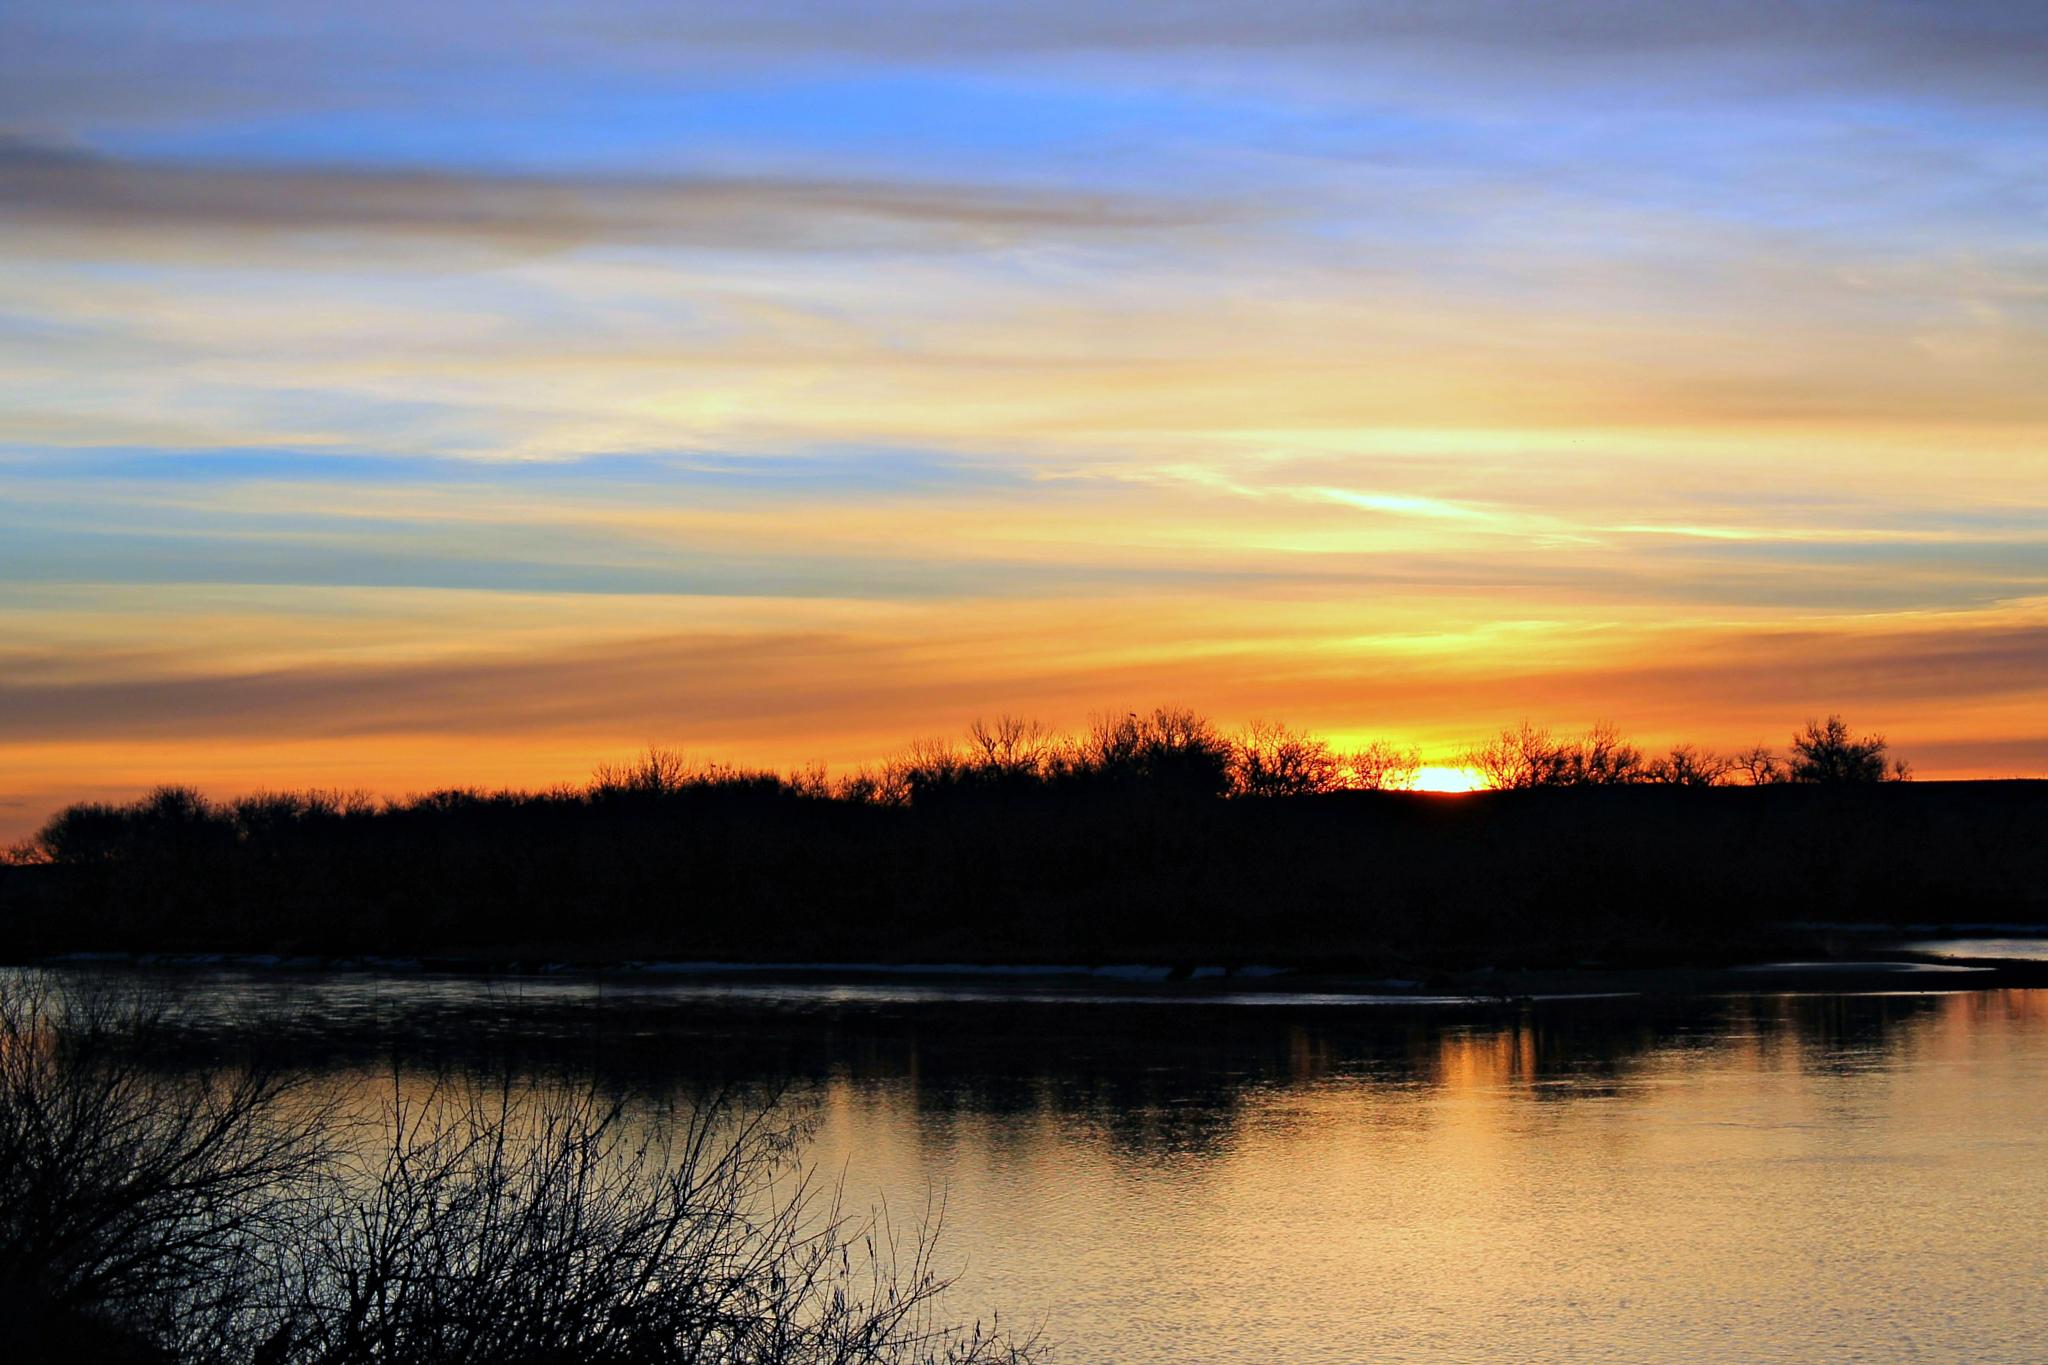 Sunrise on the Yellowstone River by Patti Holmes